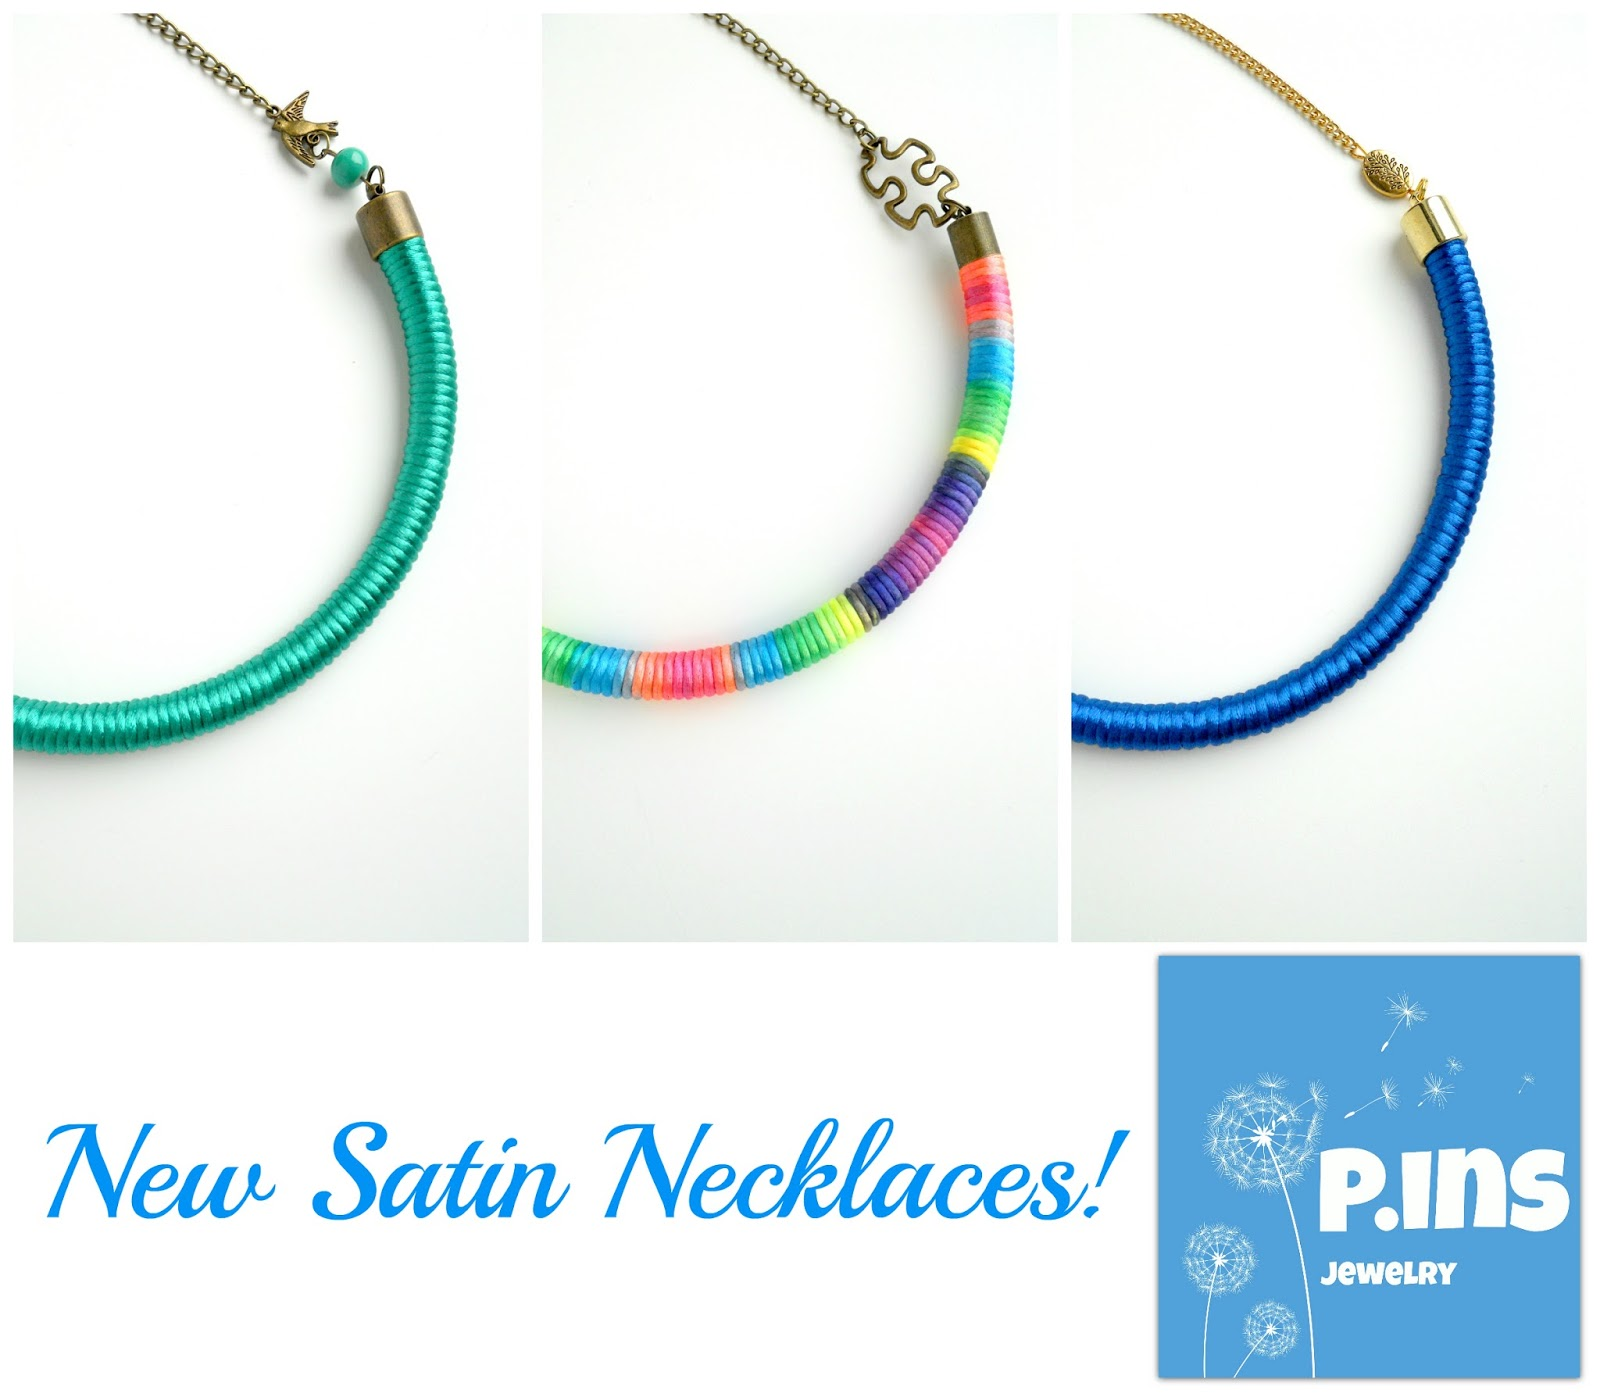 NeW NeCKLaCeS!!!